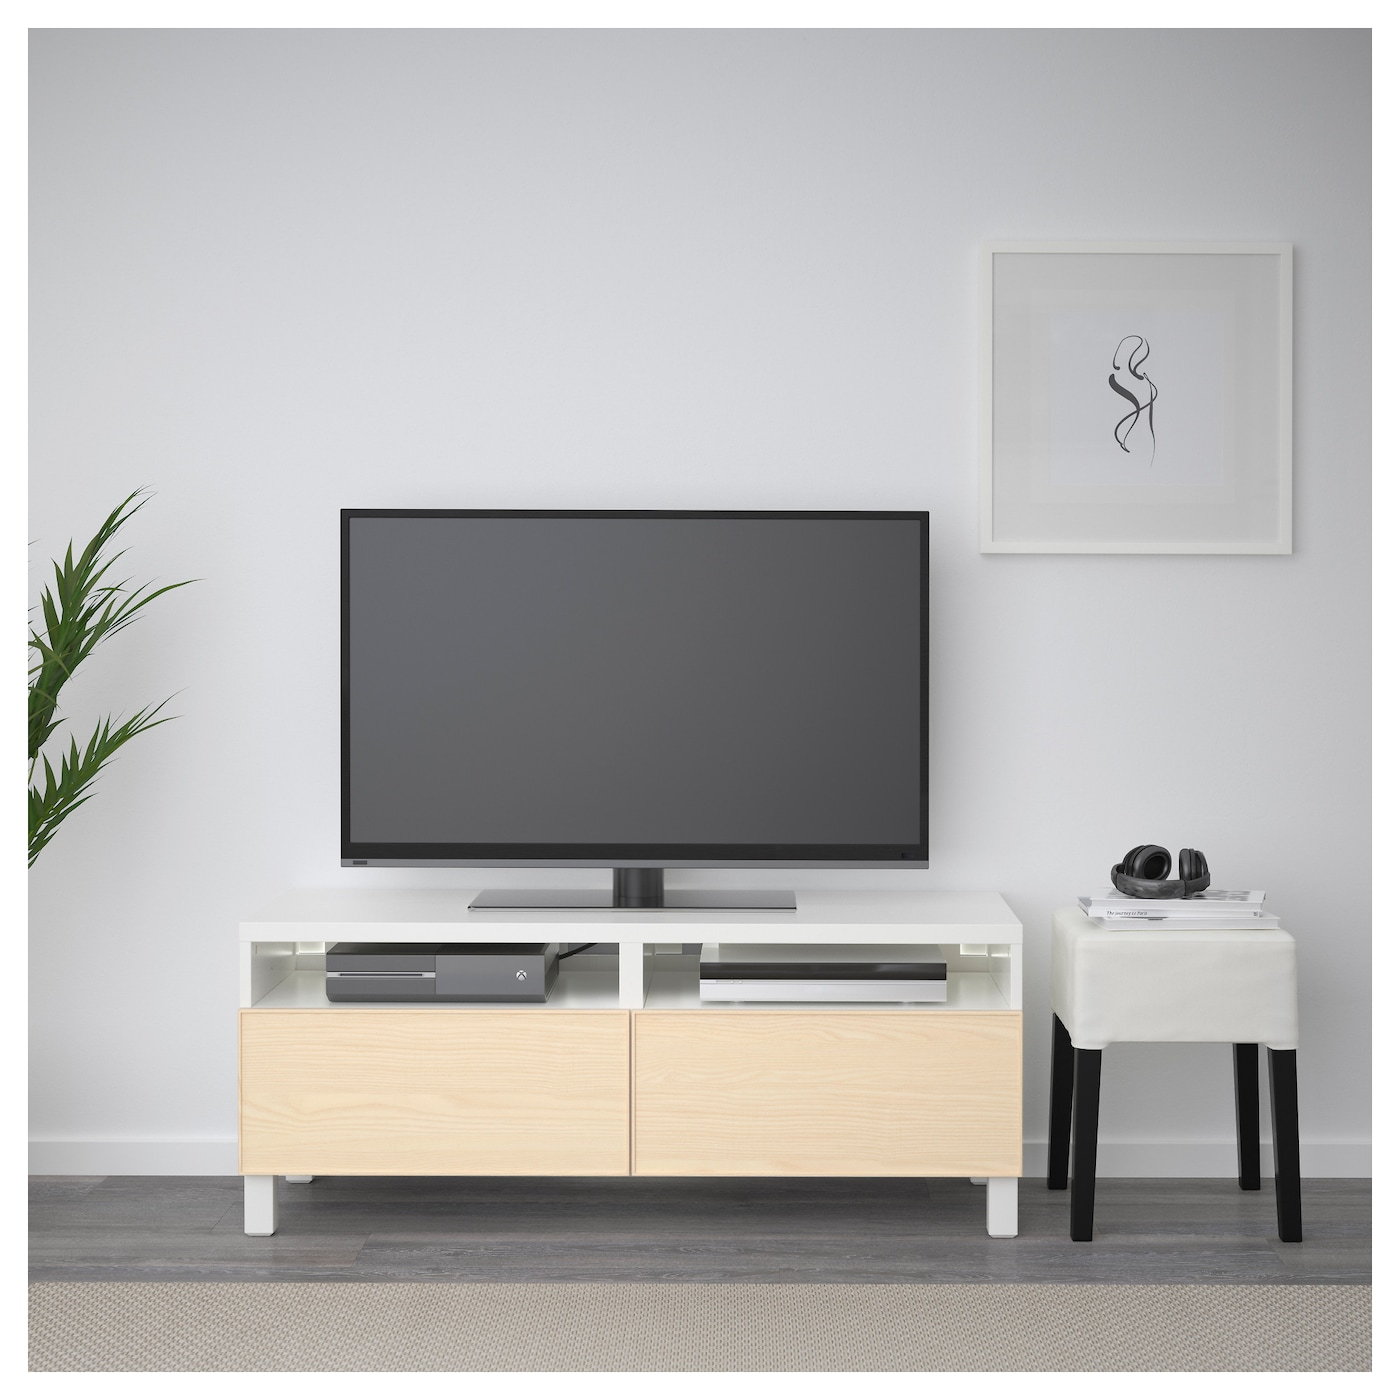 best banc tv avec tiroirs blanc inviken plaqu fr ne 120 x 40 x 48 cm ikea. Black Bedroom Furniture Sets. Home Design Ideas